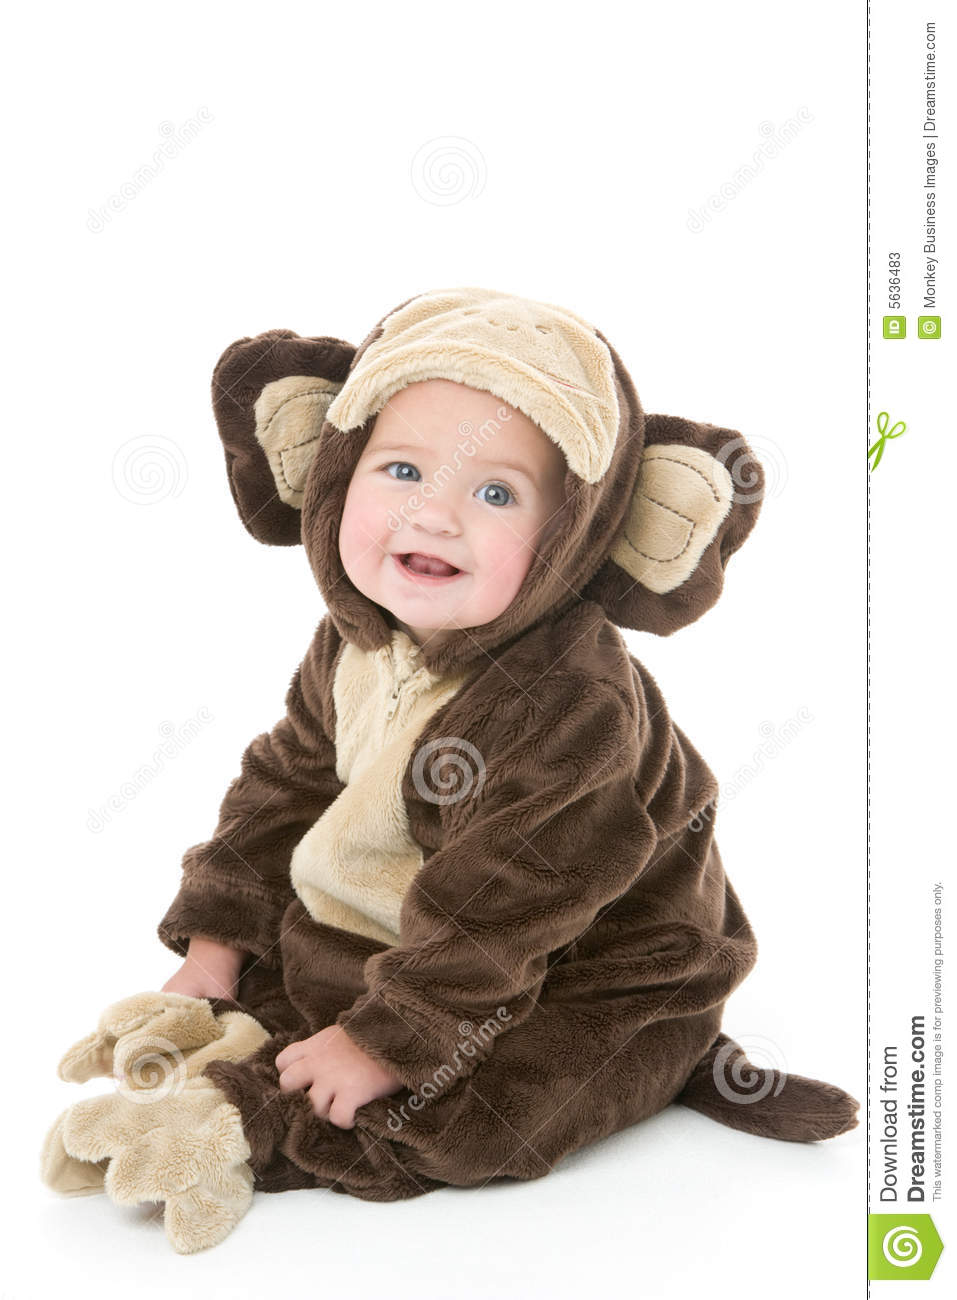 Baby In Monkey Costume Stock Photos - Image: 5636483